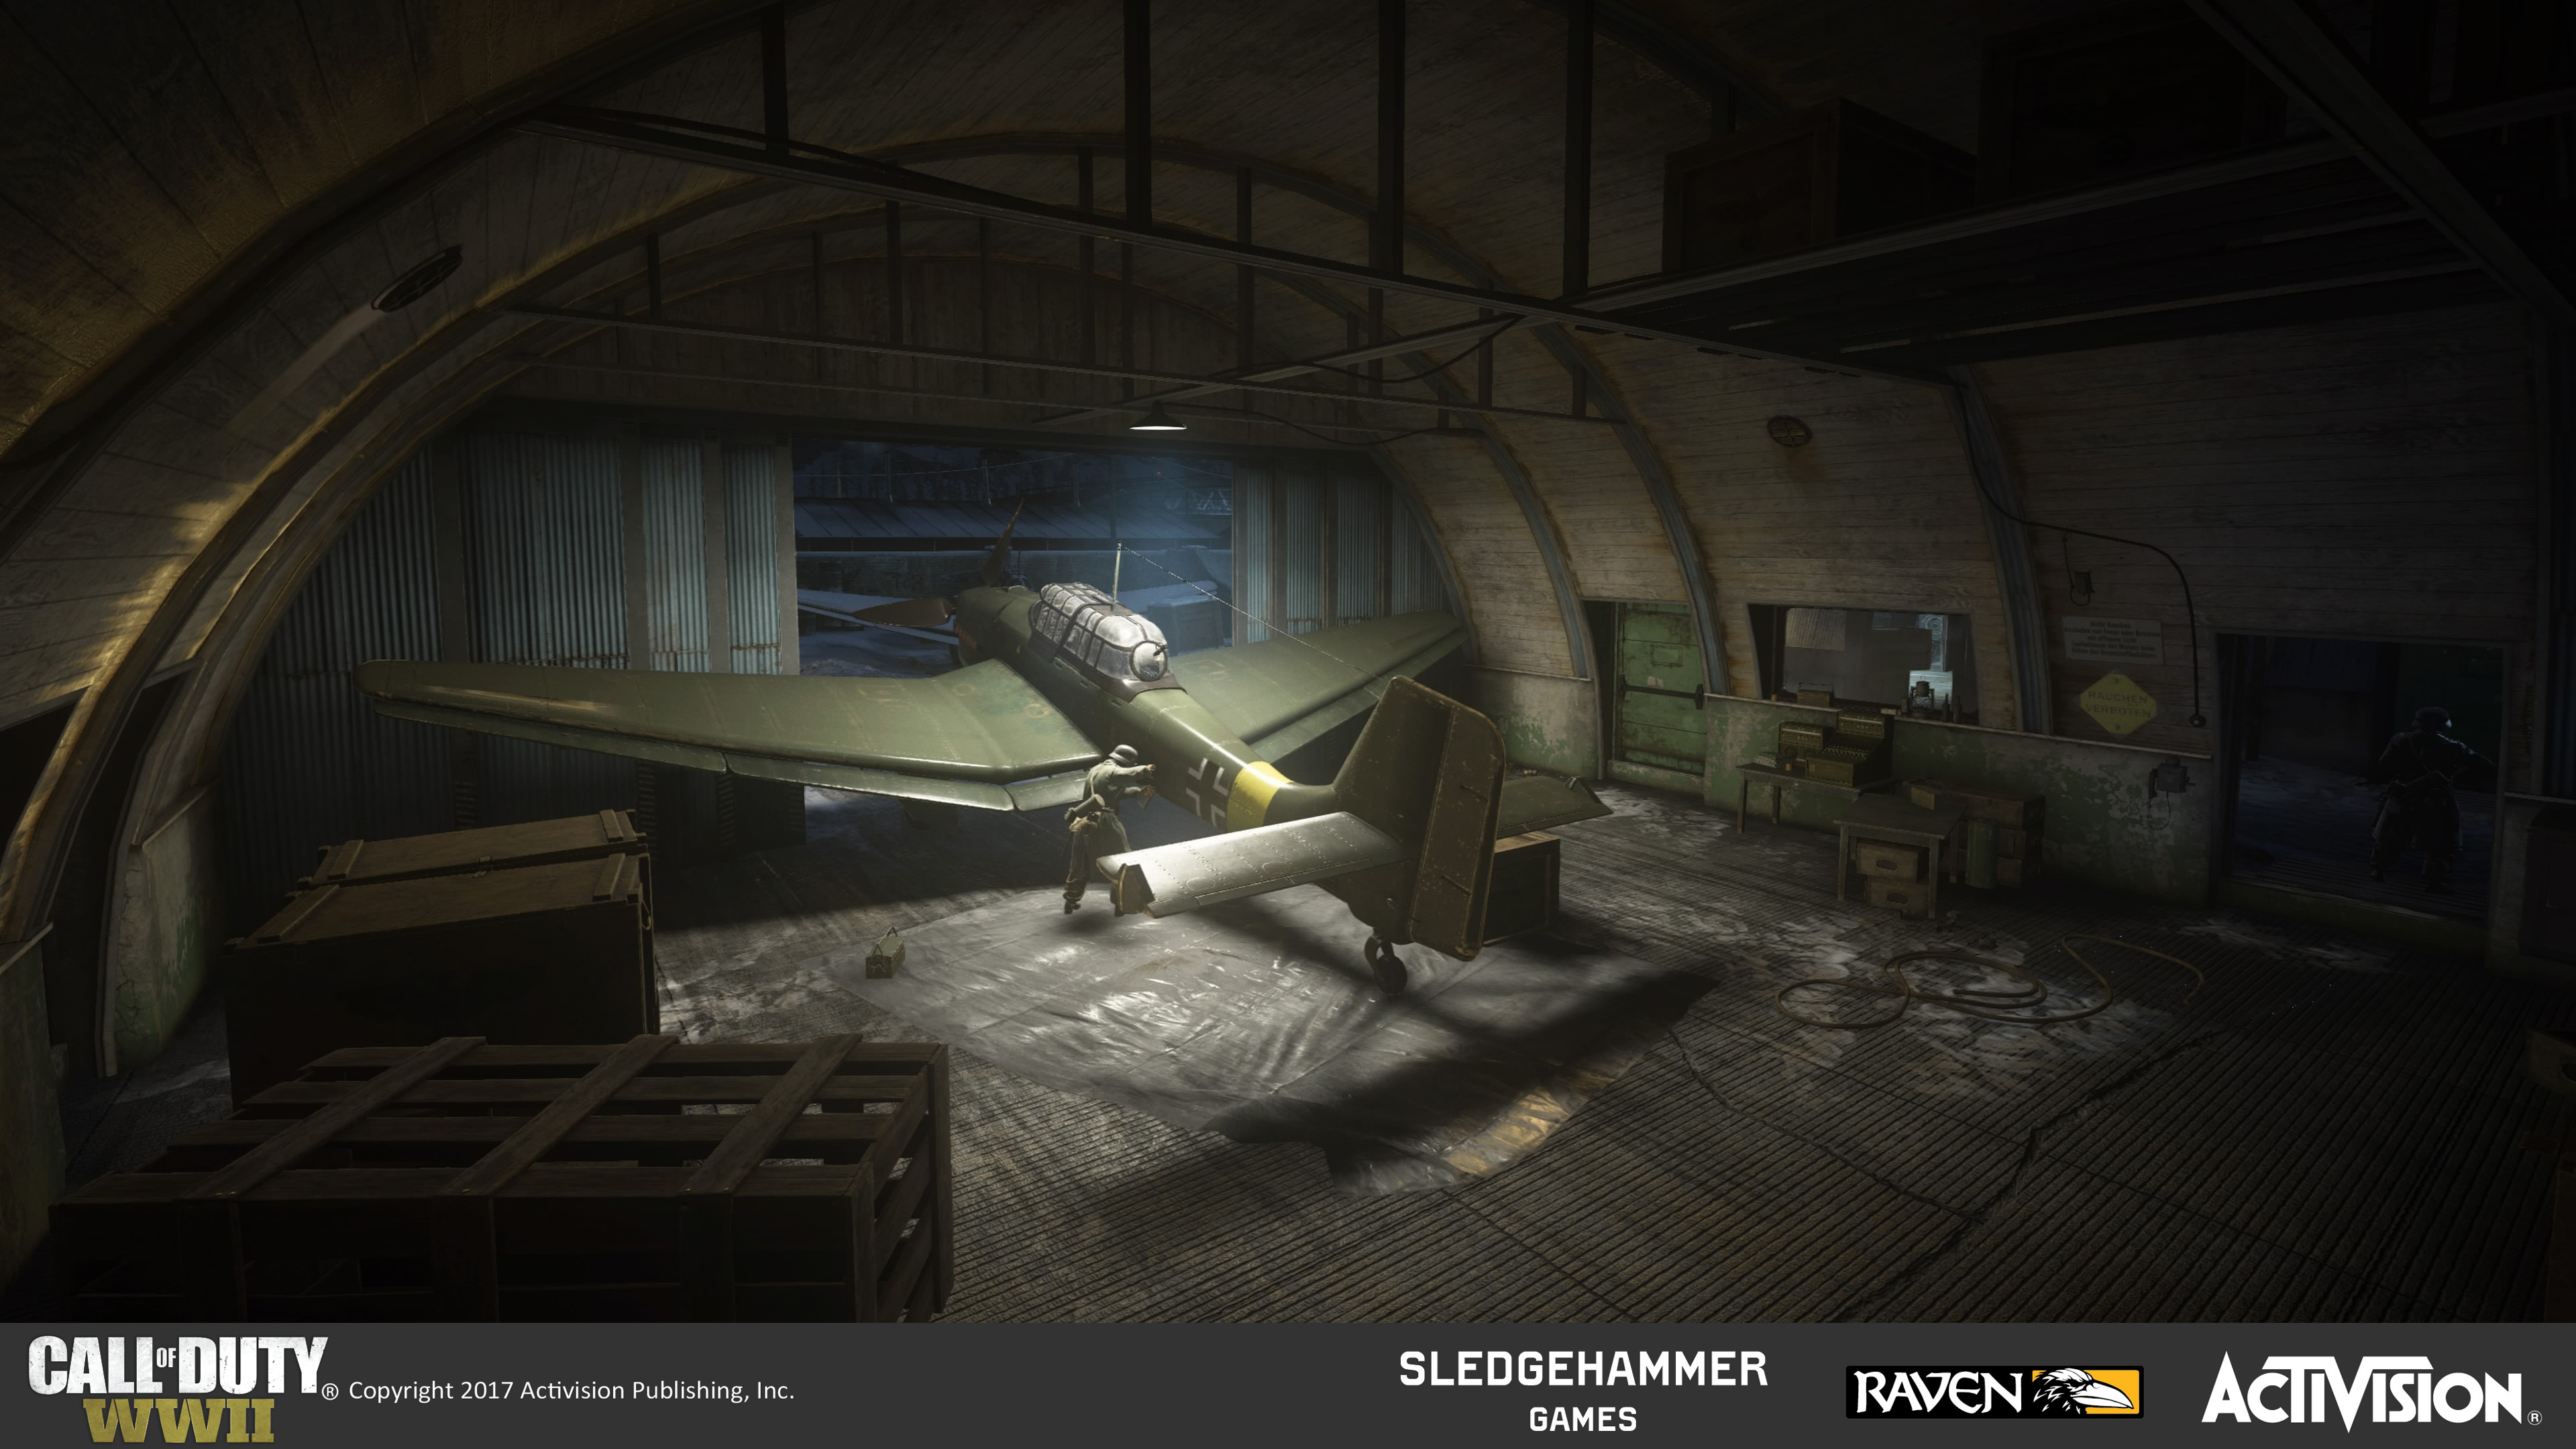 Small airplane hangar interior. Responsible for world building which included set-dressing, terrain and architecture construction, as well as material blend treatments utilizing custom and pre-existing materials.